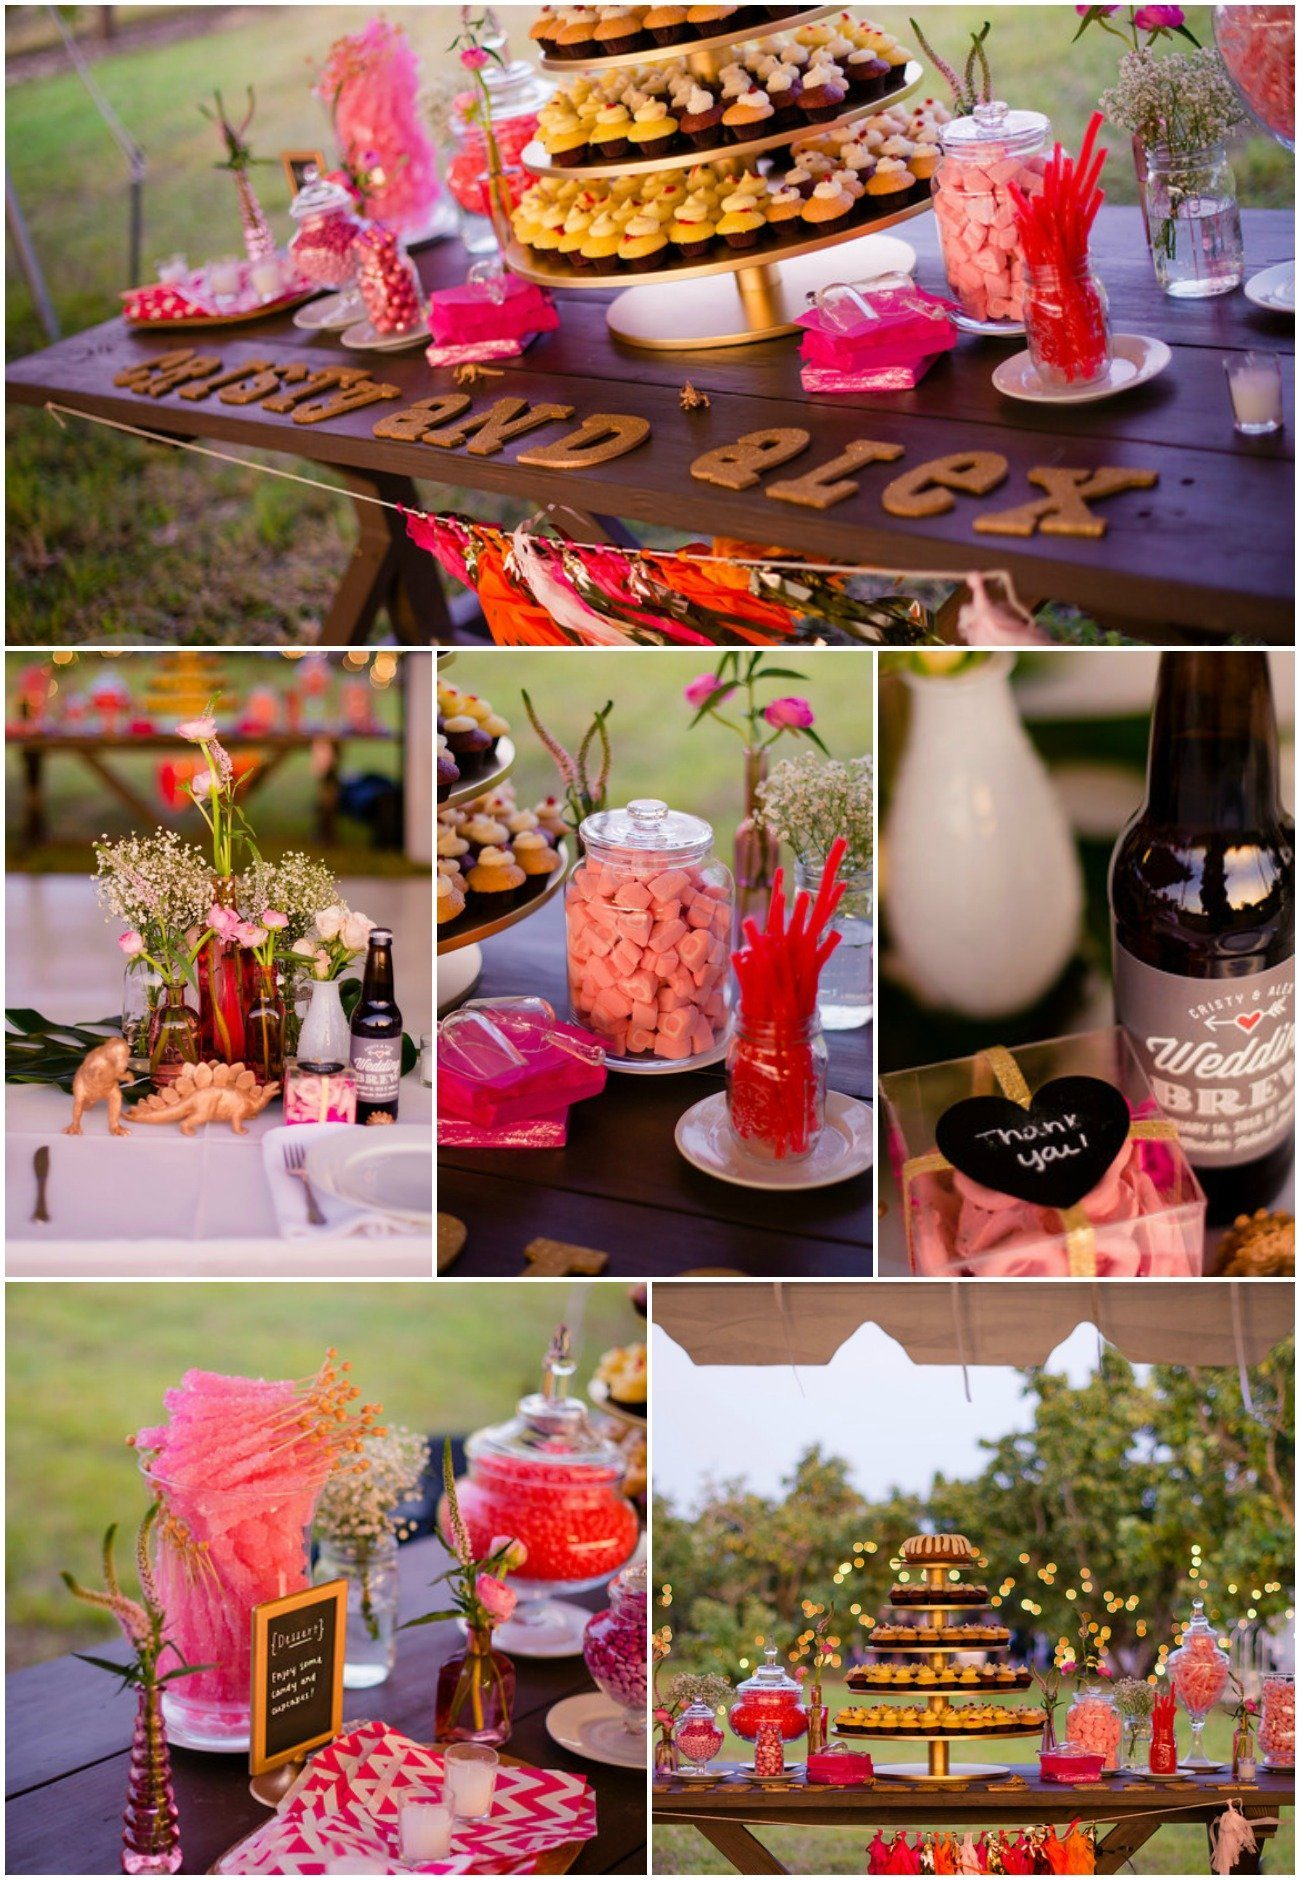 Whimiscal Real Wedding with hot pink candy bar